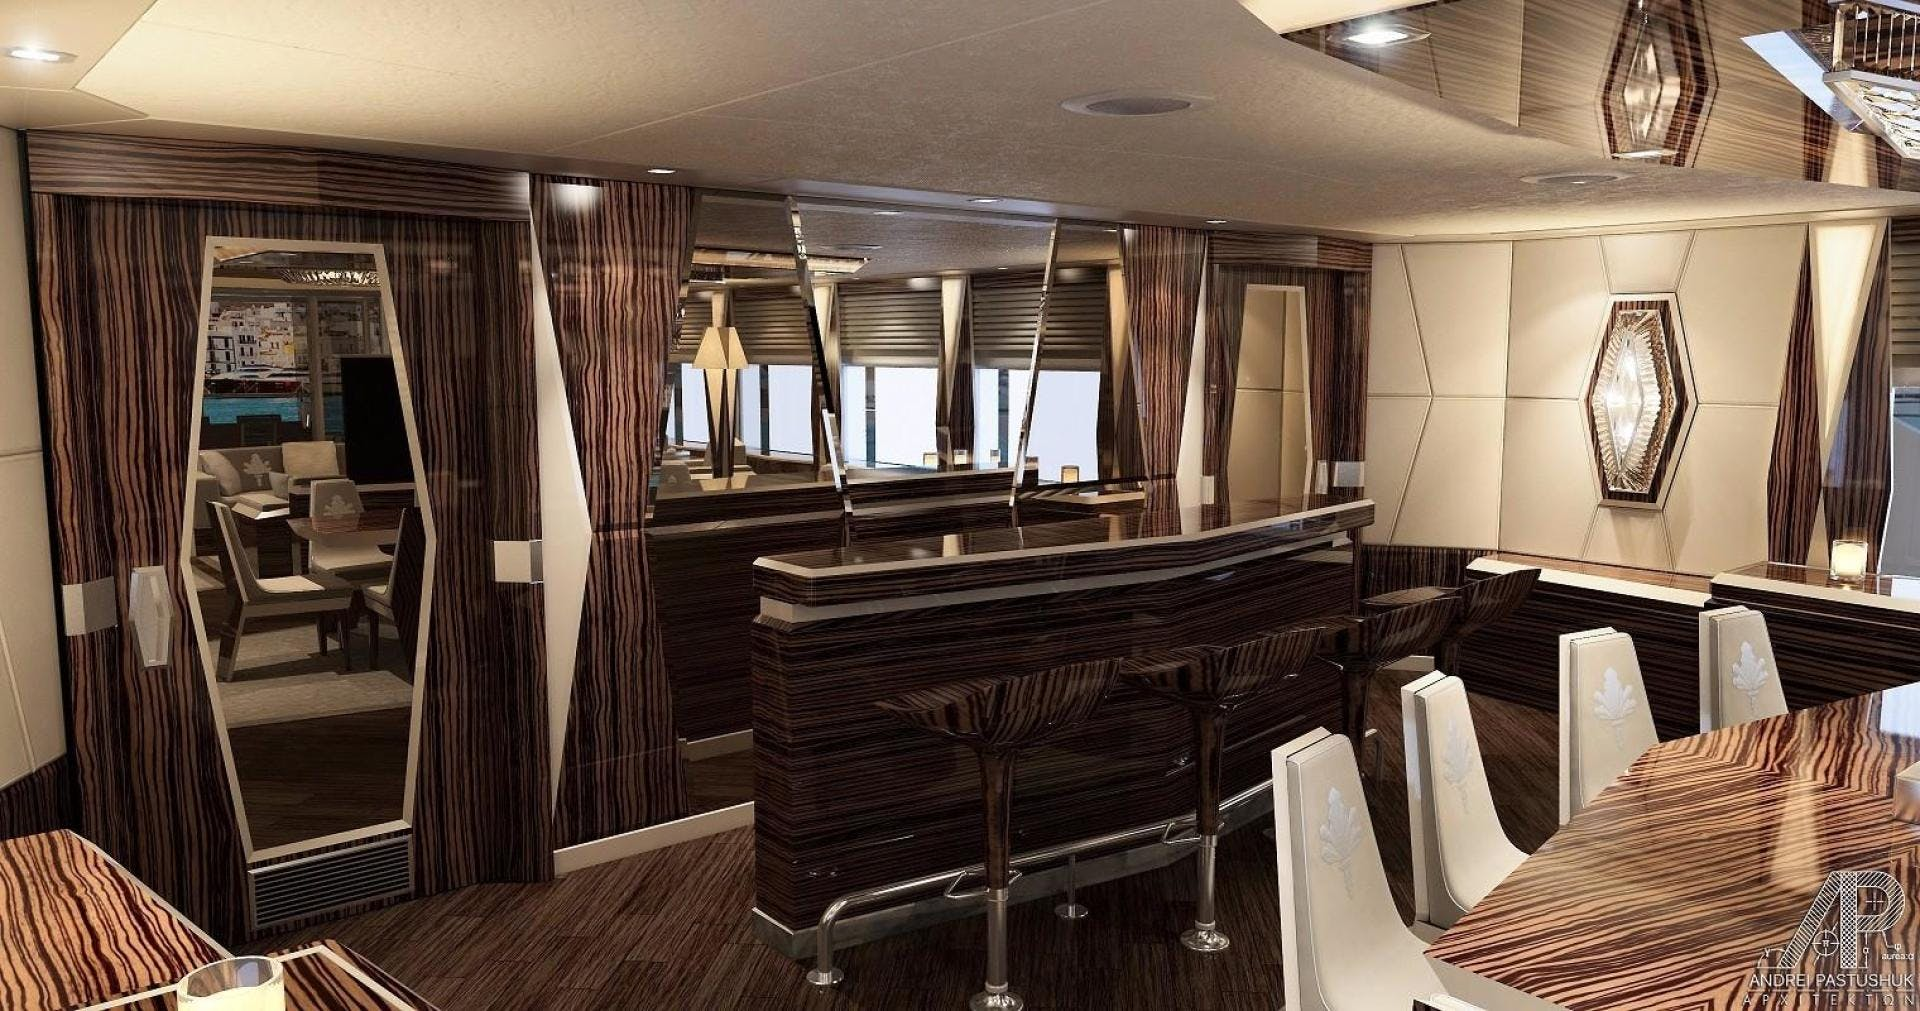 2022 Motor Yacht 154' Motor Yacht ACER | Picture 4 of 23